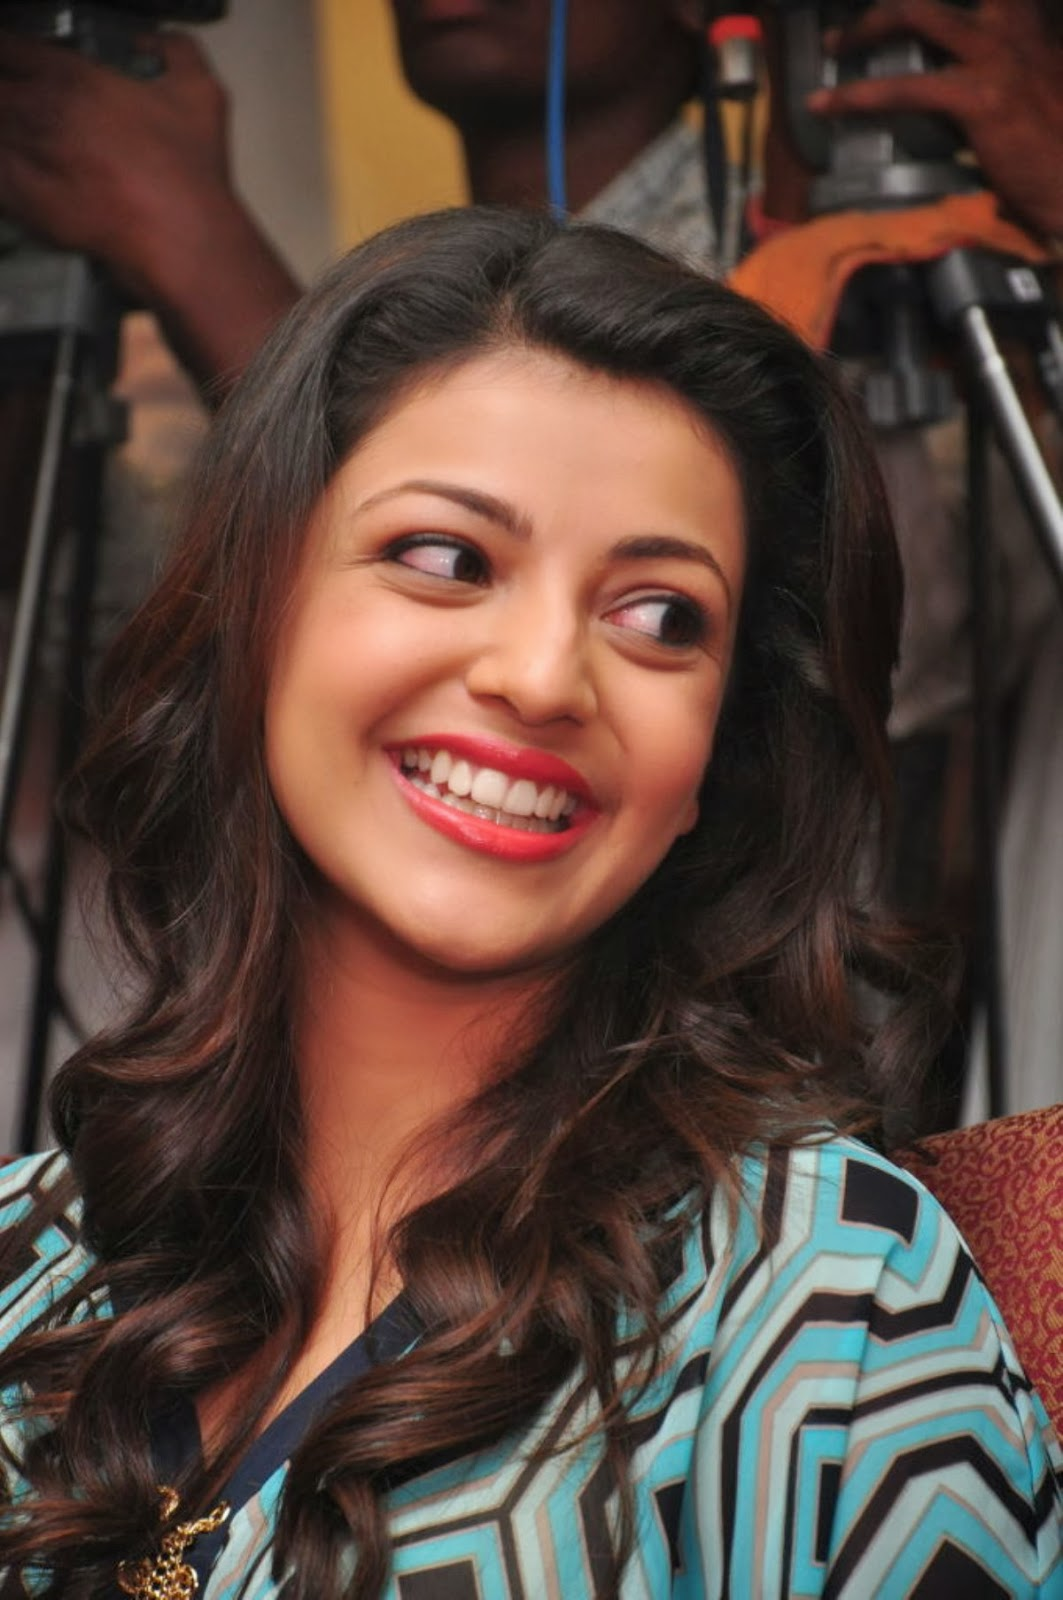 party pics | kajal agarwal latest hd wallpapers / gallery